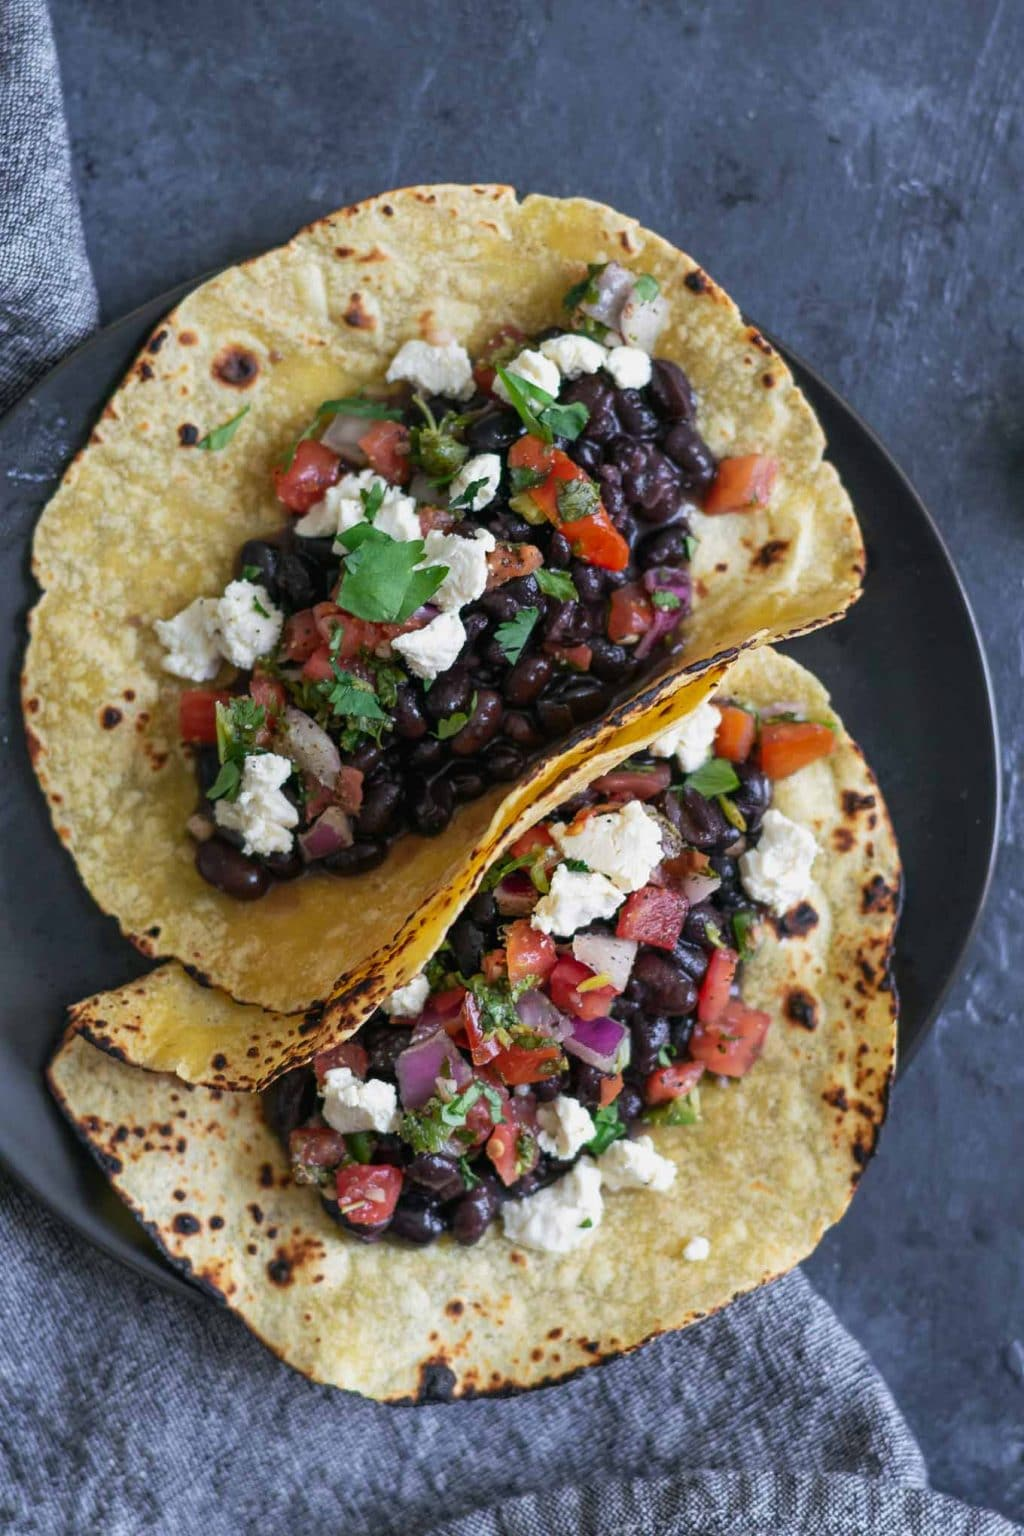 Easy homemade vegan queso fresco on black bean tacos with pico de gallo and charred corn tortillas.